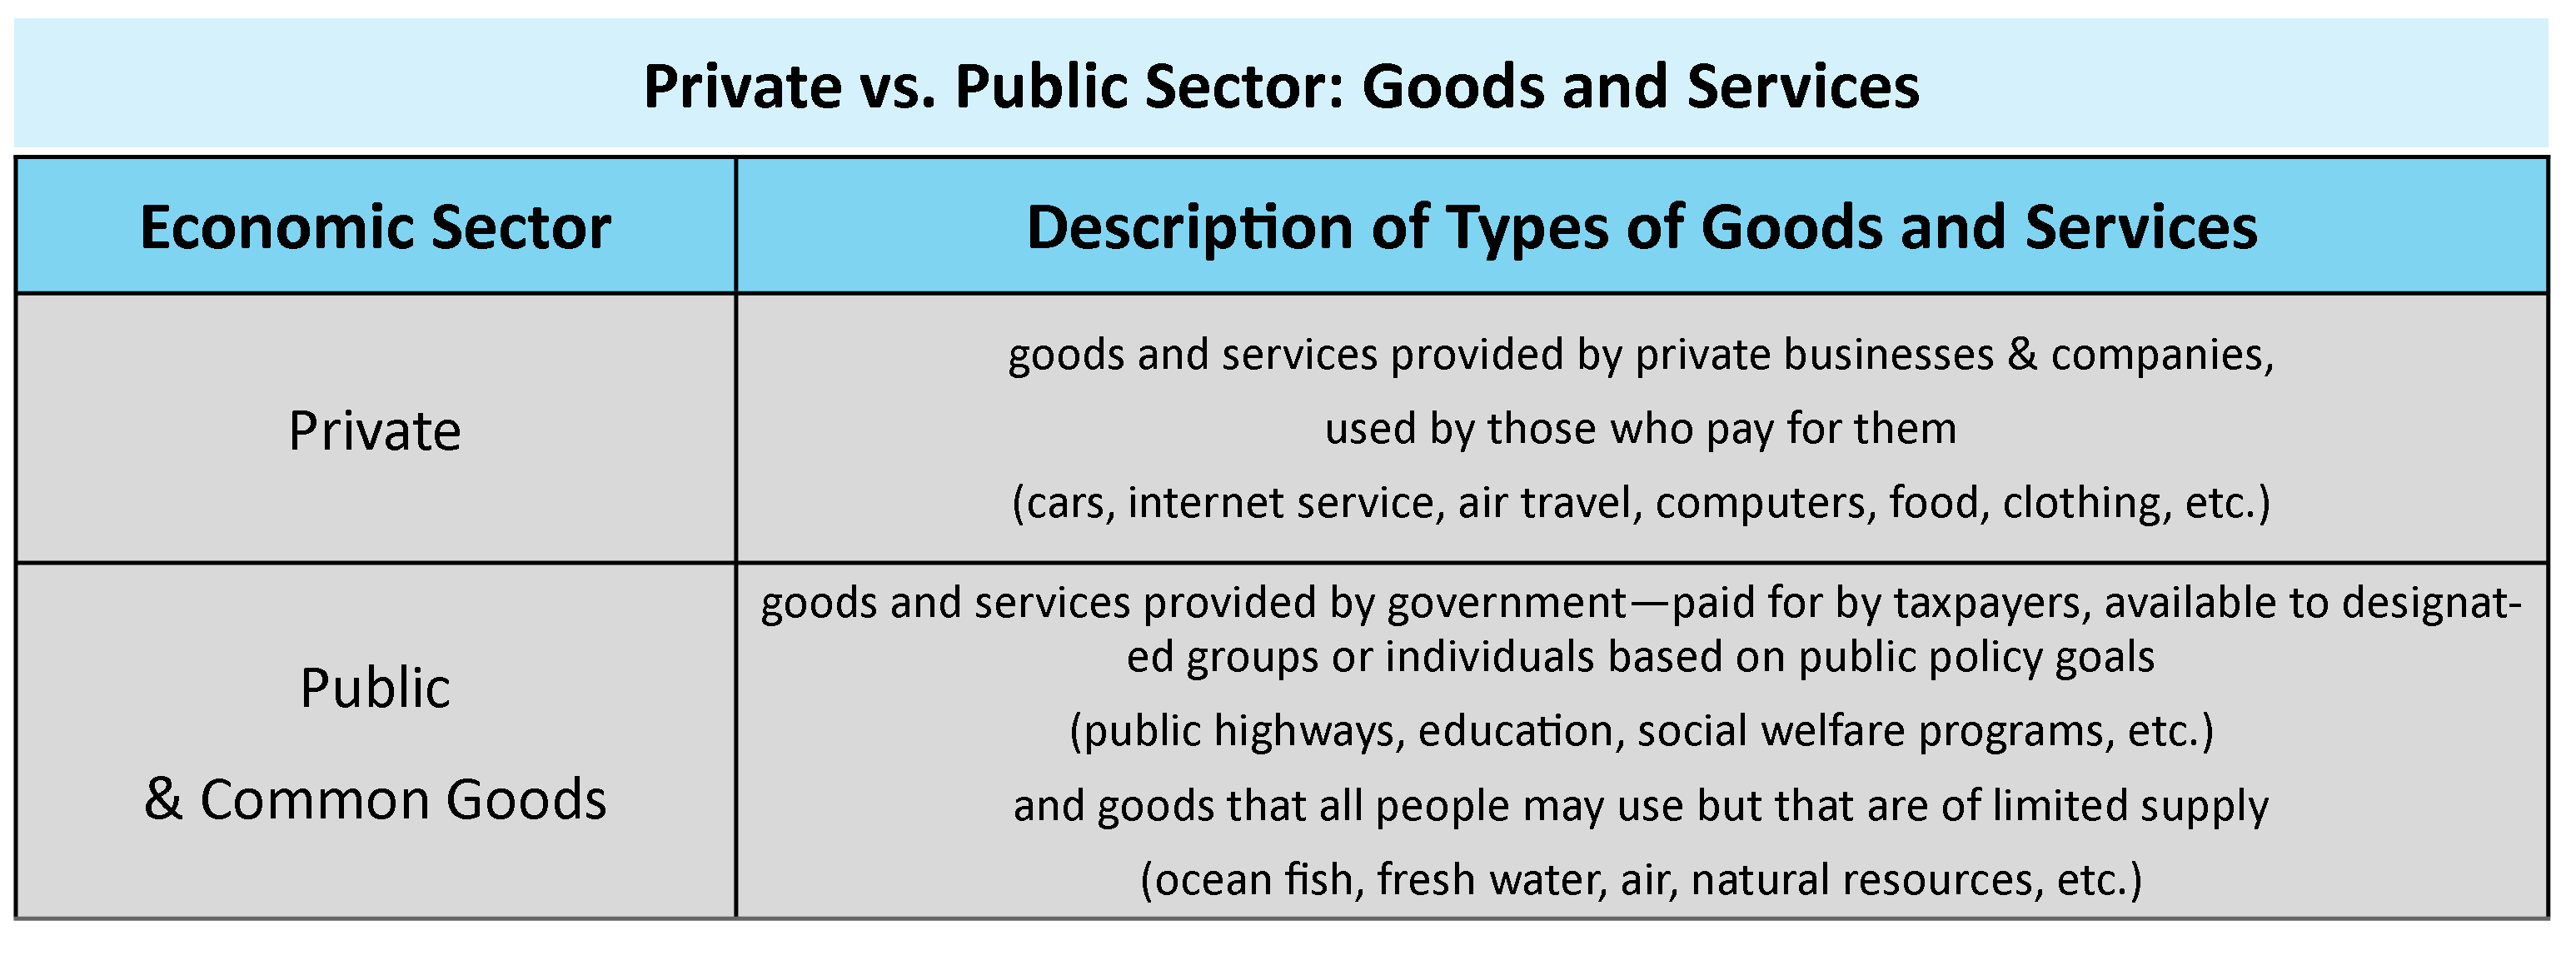 Chart revisiting the definitions of private versus public sector goods and services.